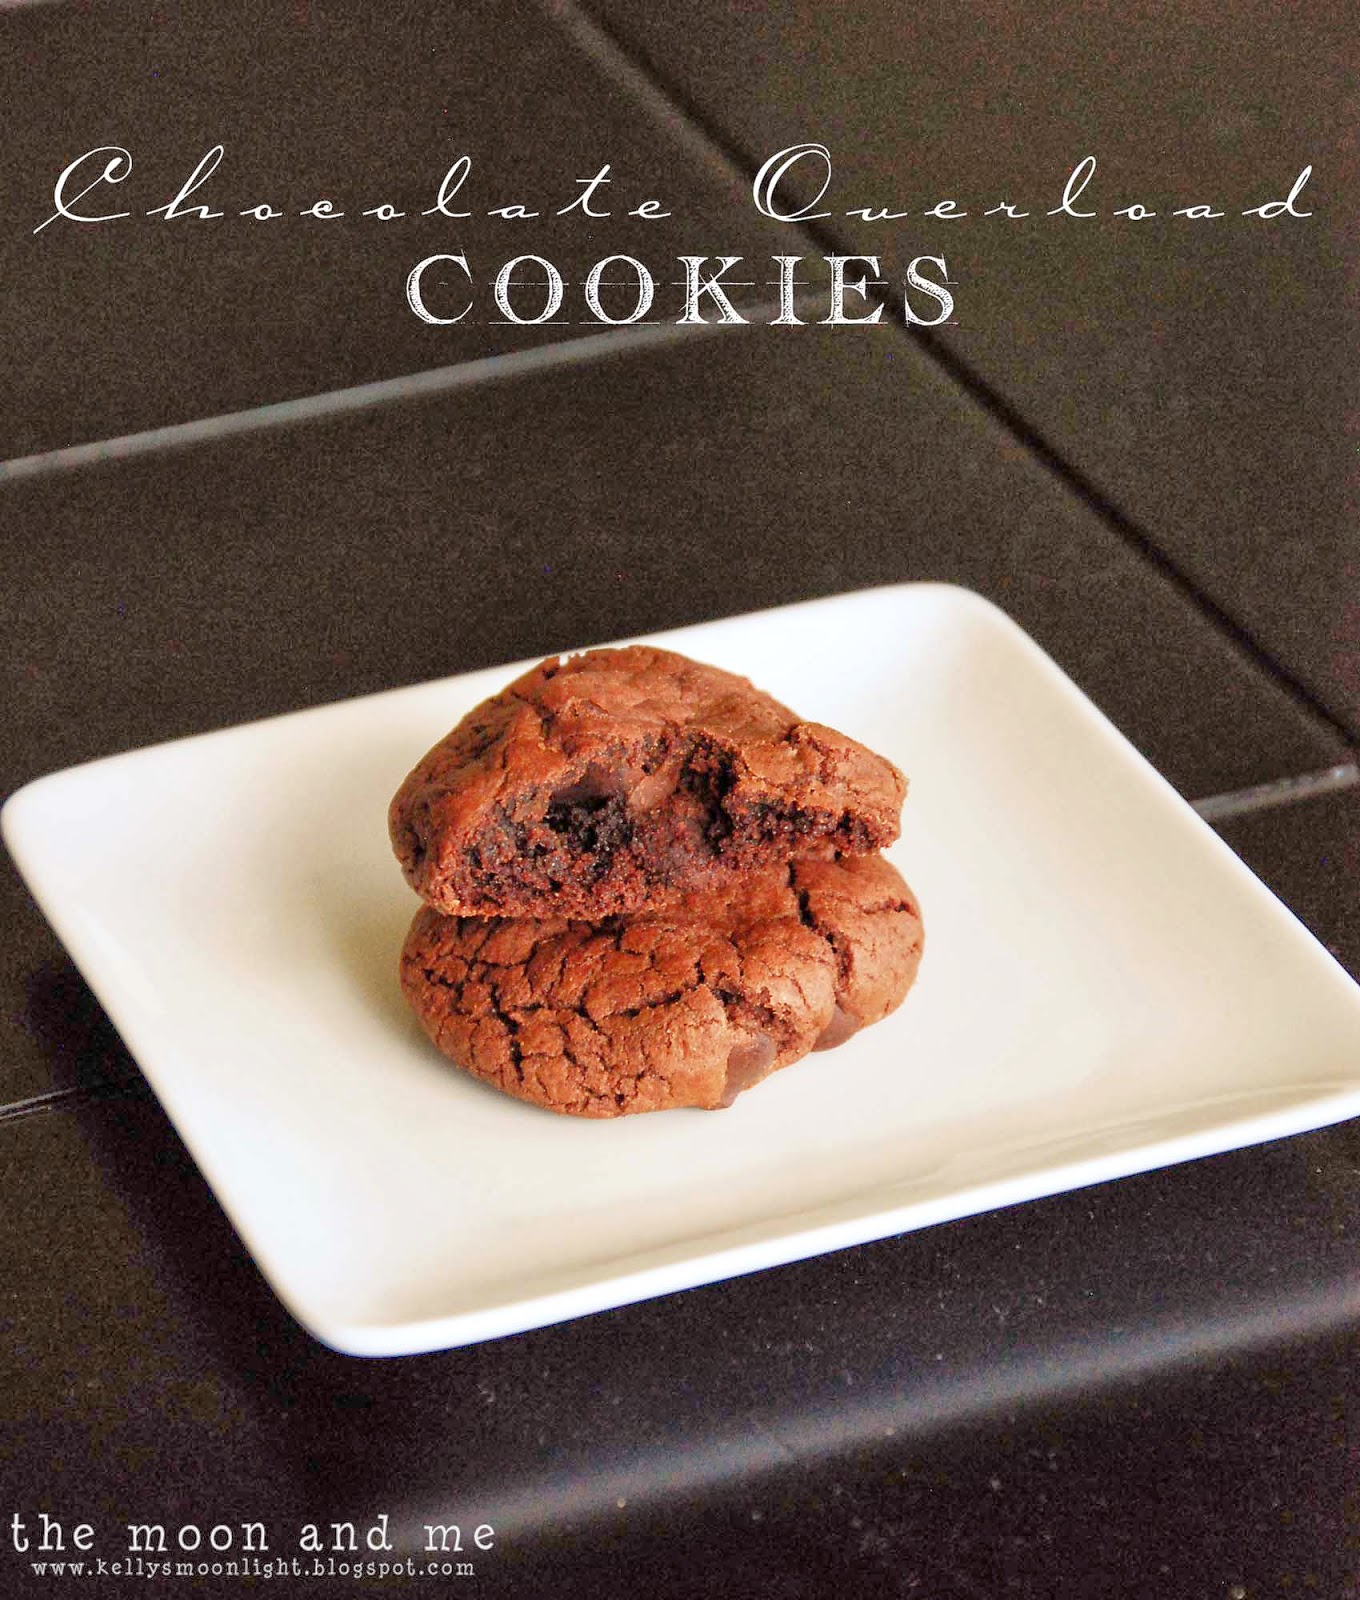 The Moon and Me: Sara Bakes ~ Chocolate Overload Cookies